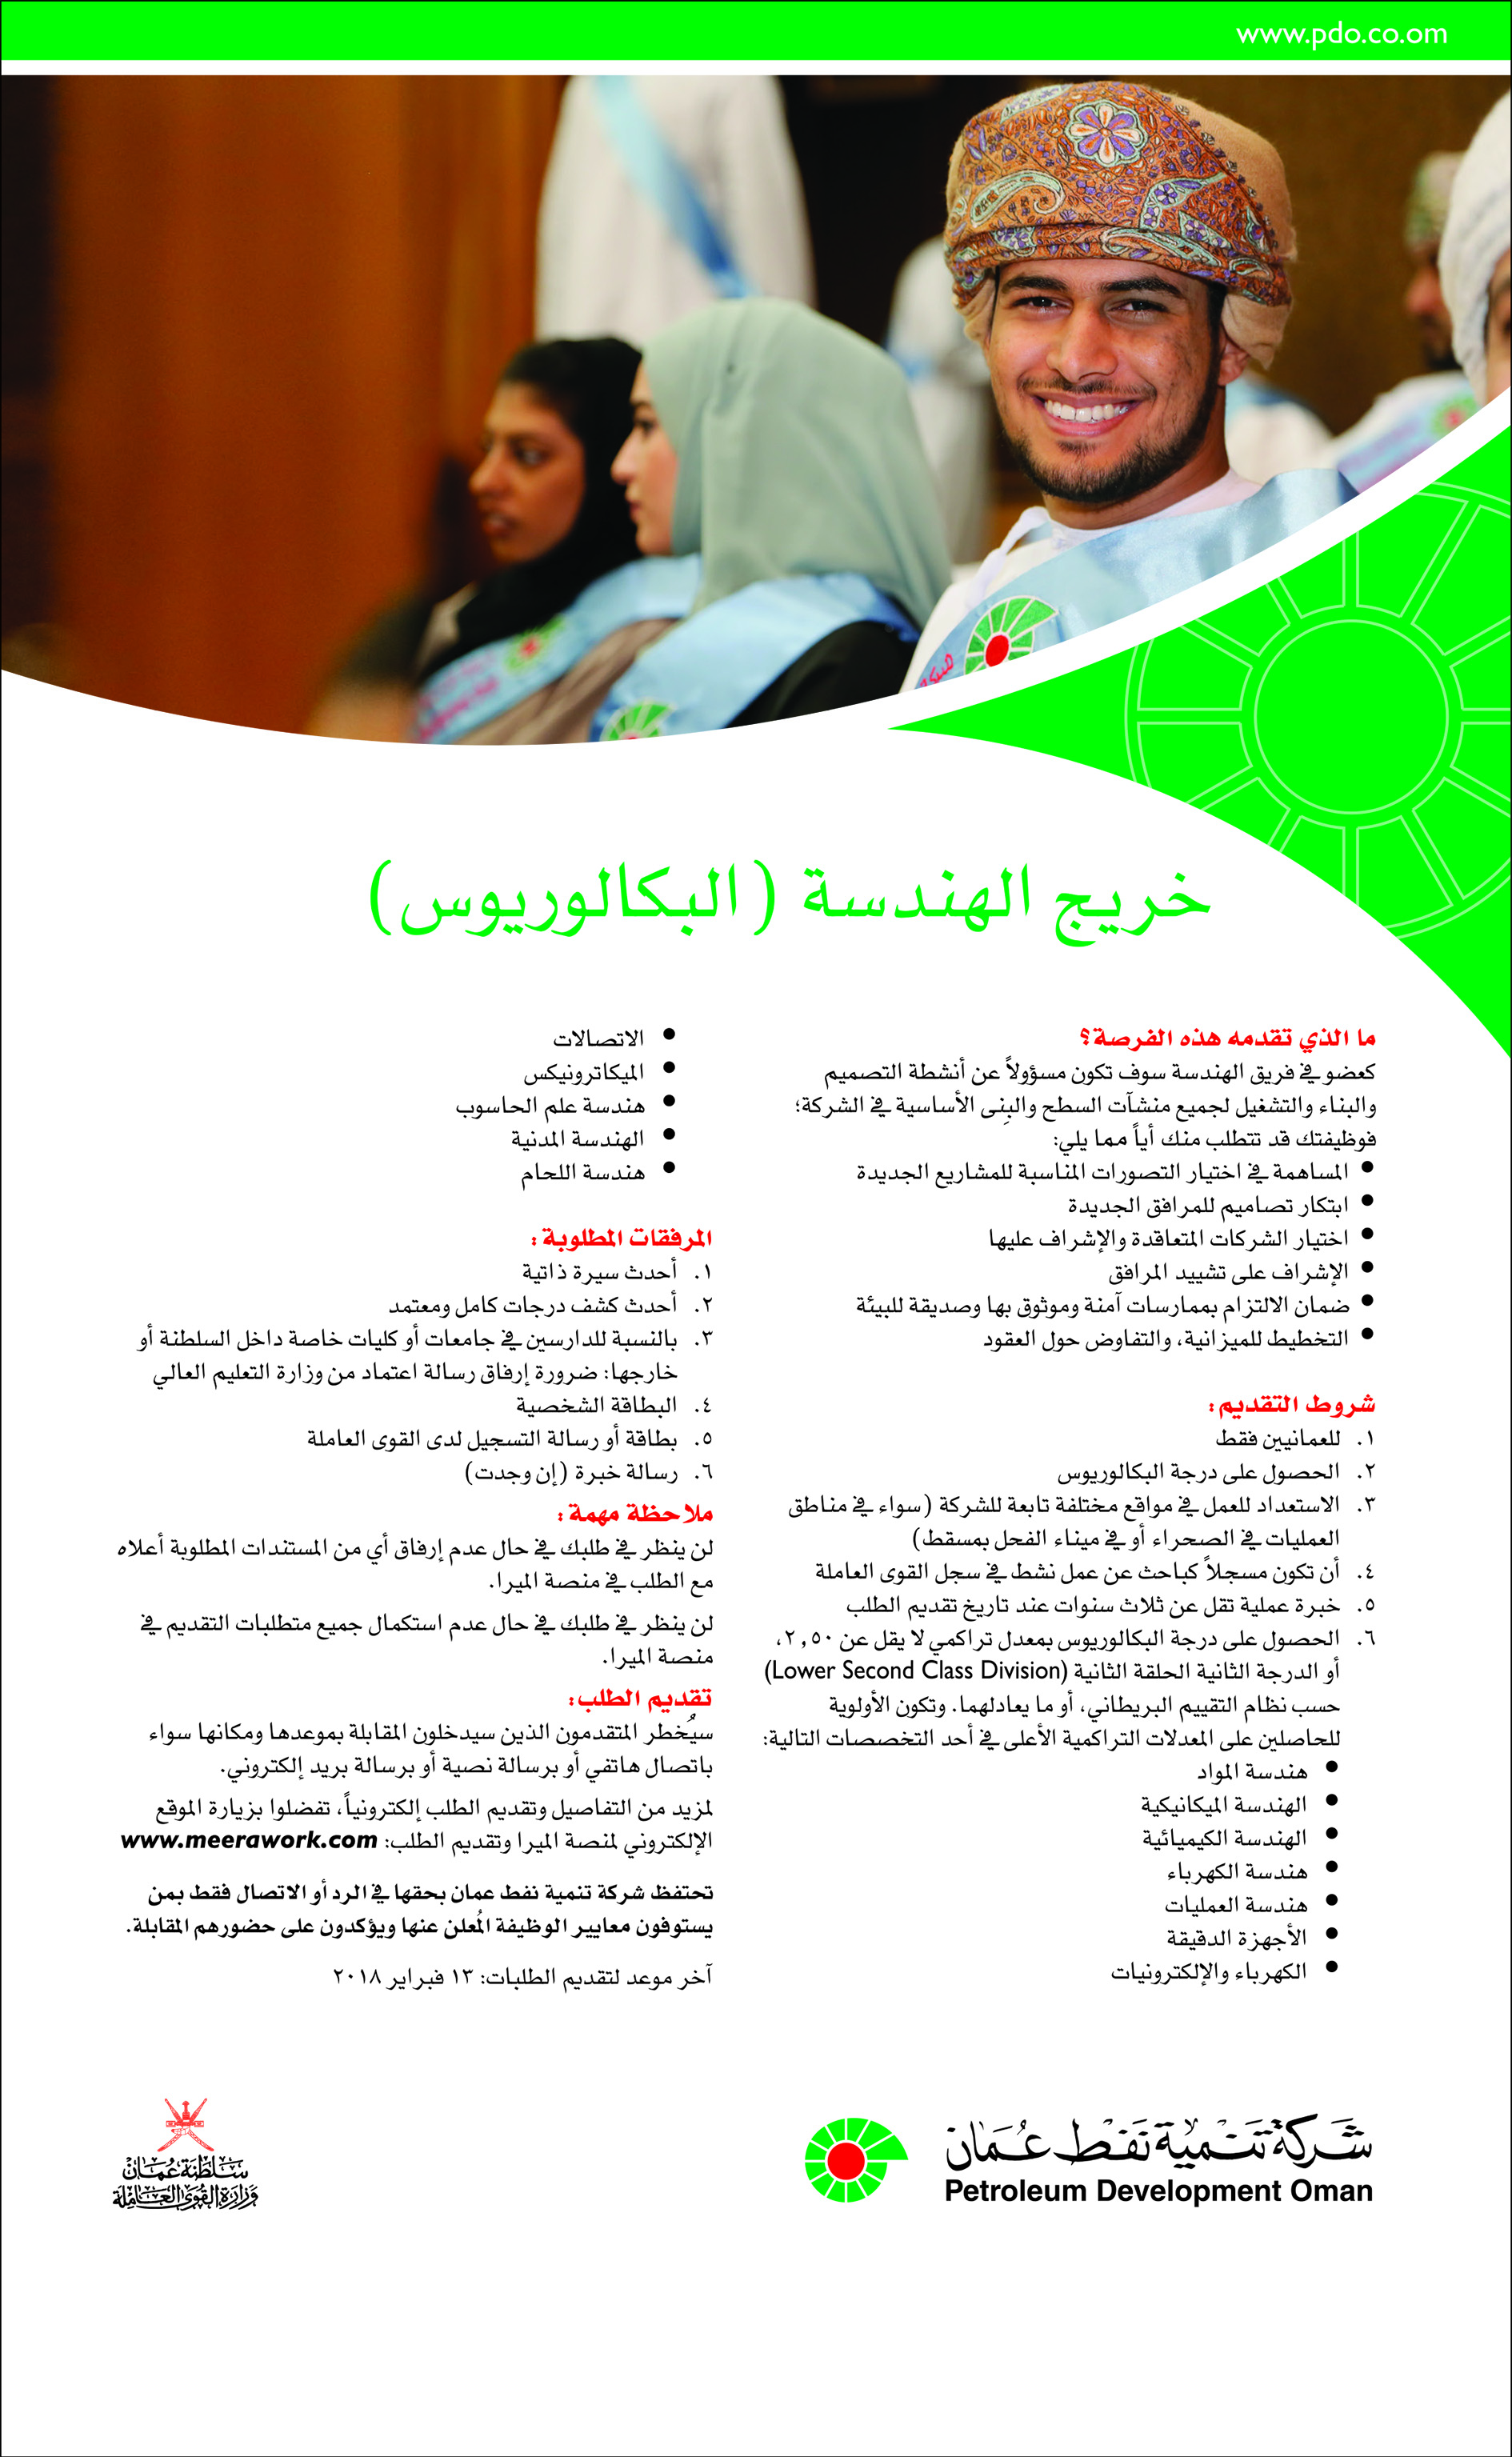 PDO Engineer ad Al Roya